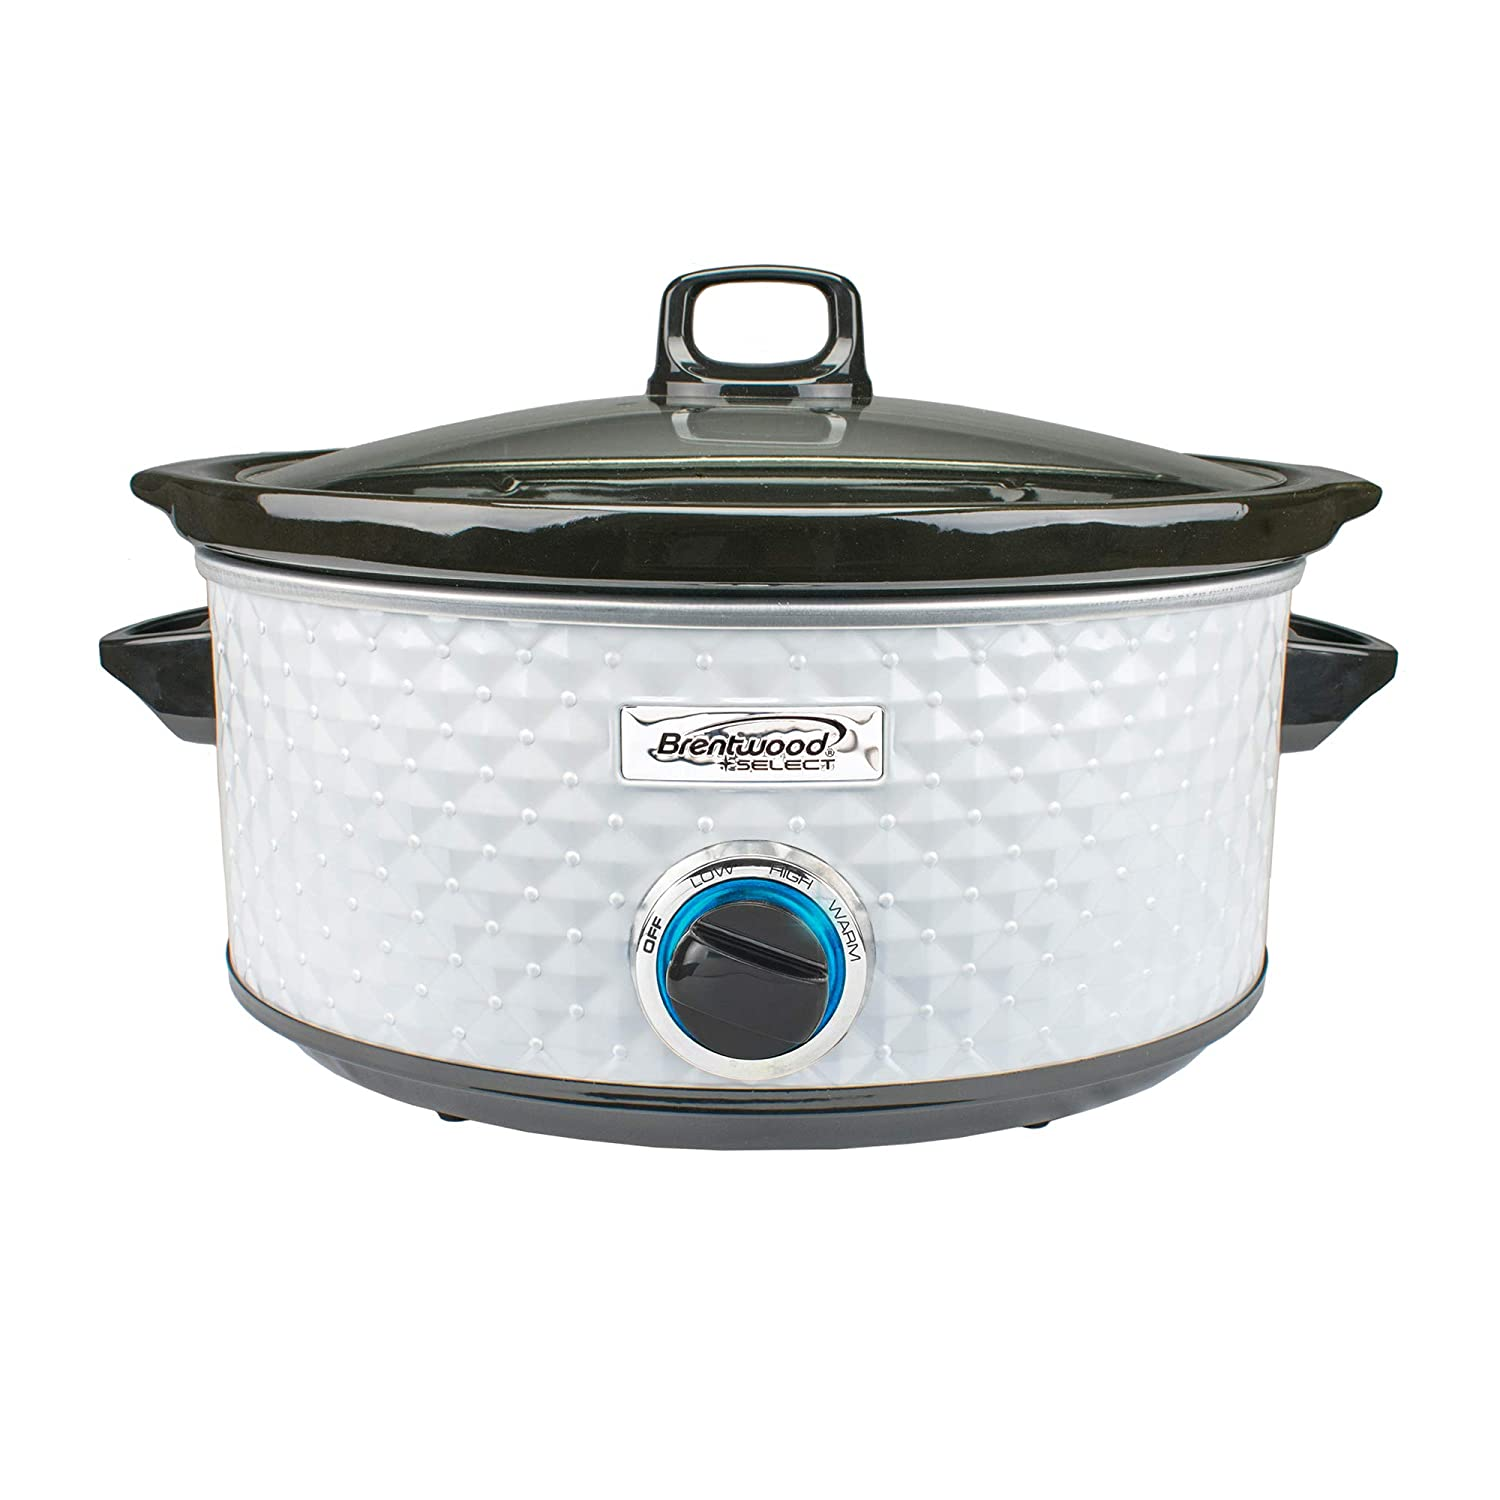 Brentwood Select Diamond Pattern Slow Cooker, 7 Quart (White)